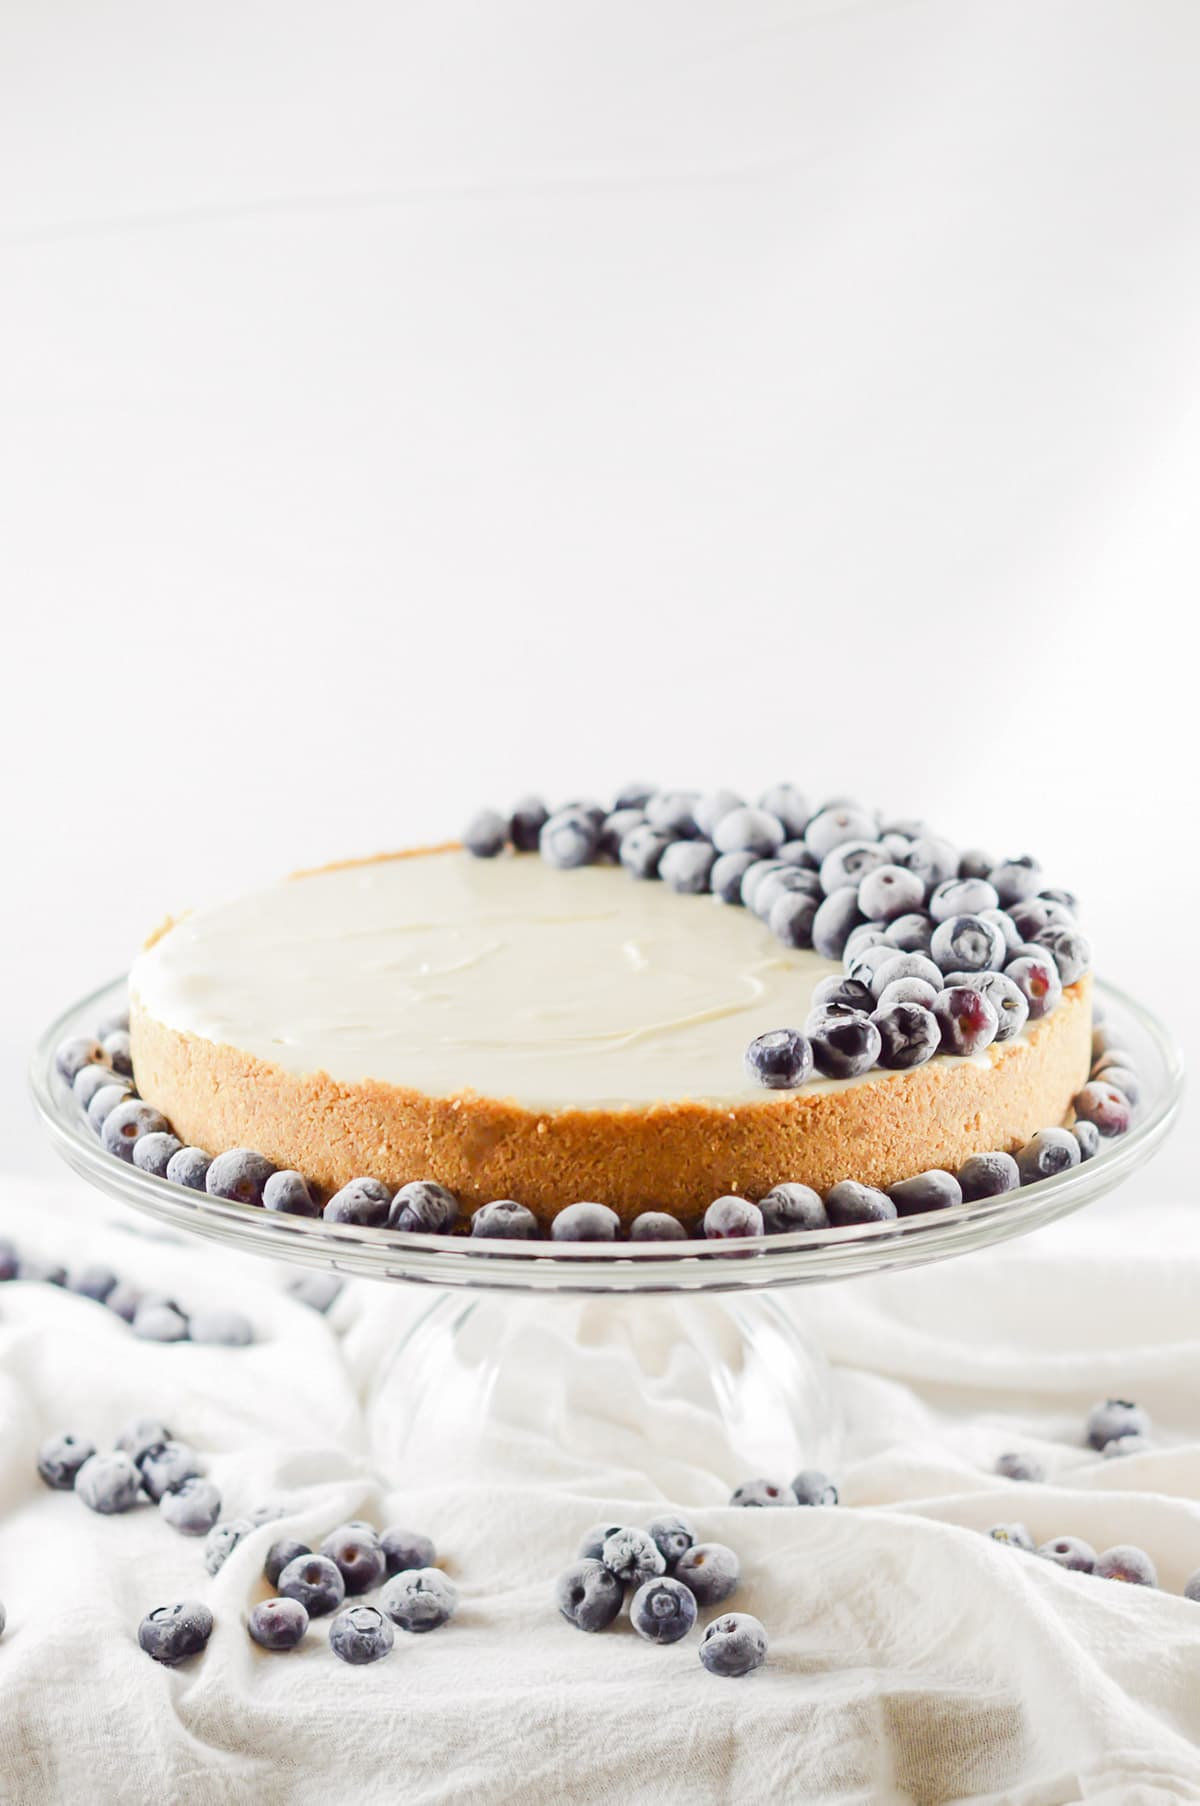 a whole plain no bake cheesecake on a cake stand decorated with fresh blueberries.